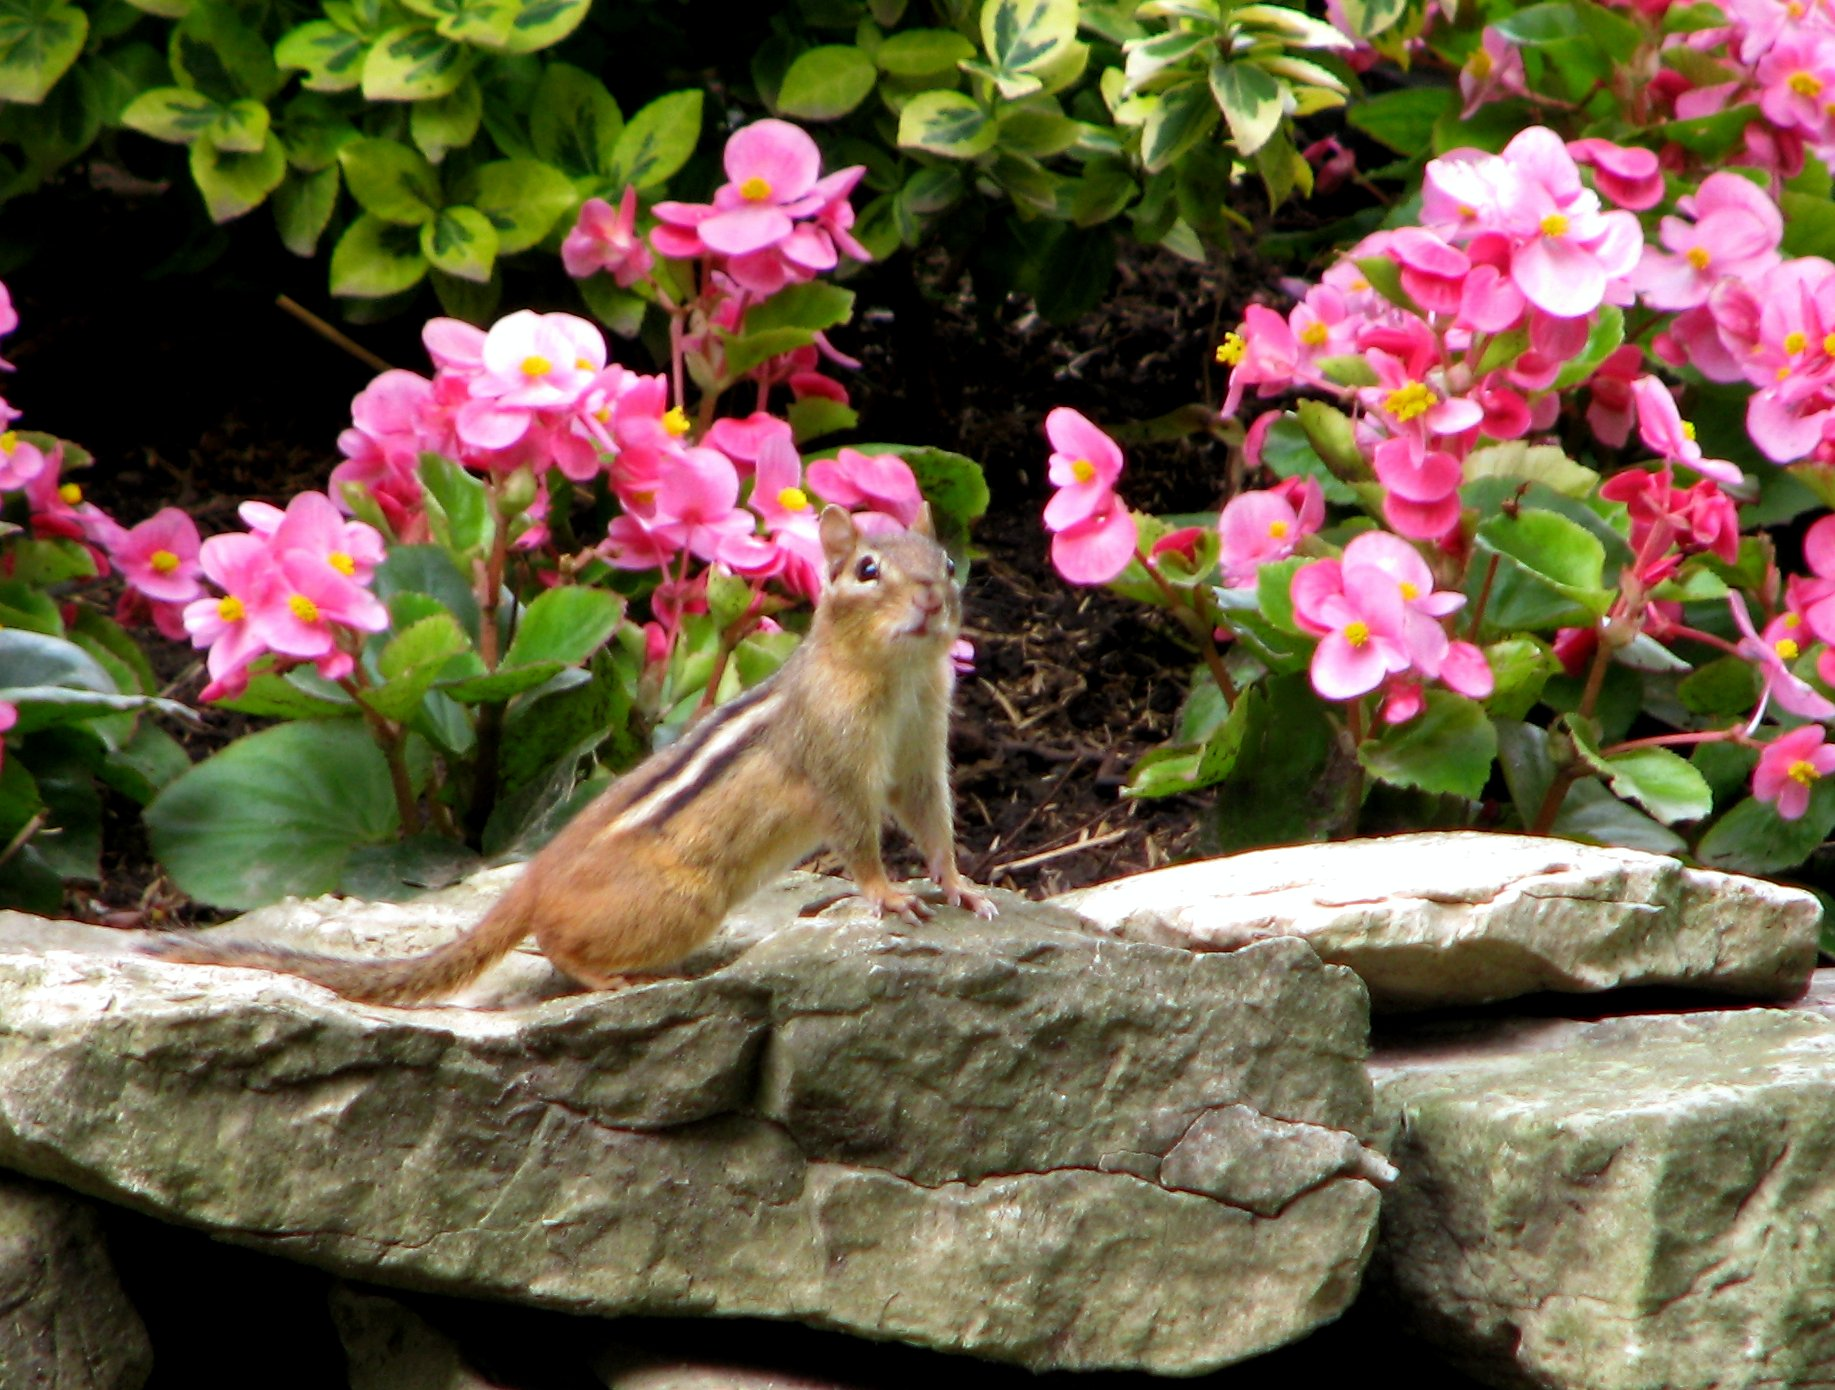 chipmunk perched on the rocks in front of pink begonias